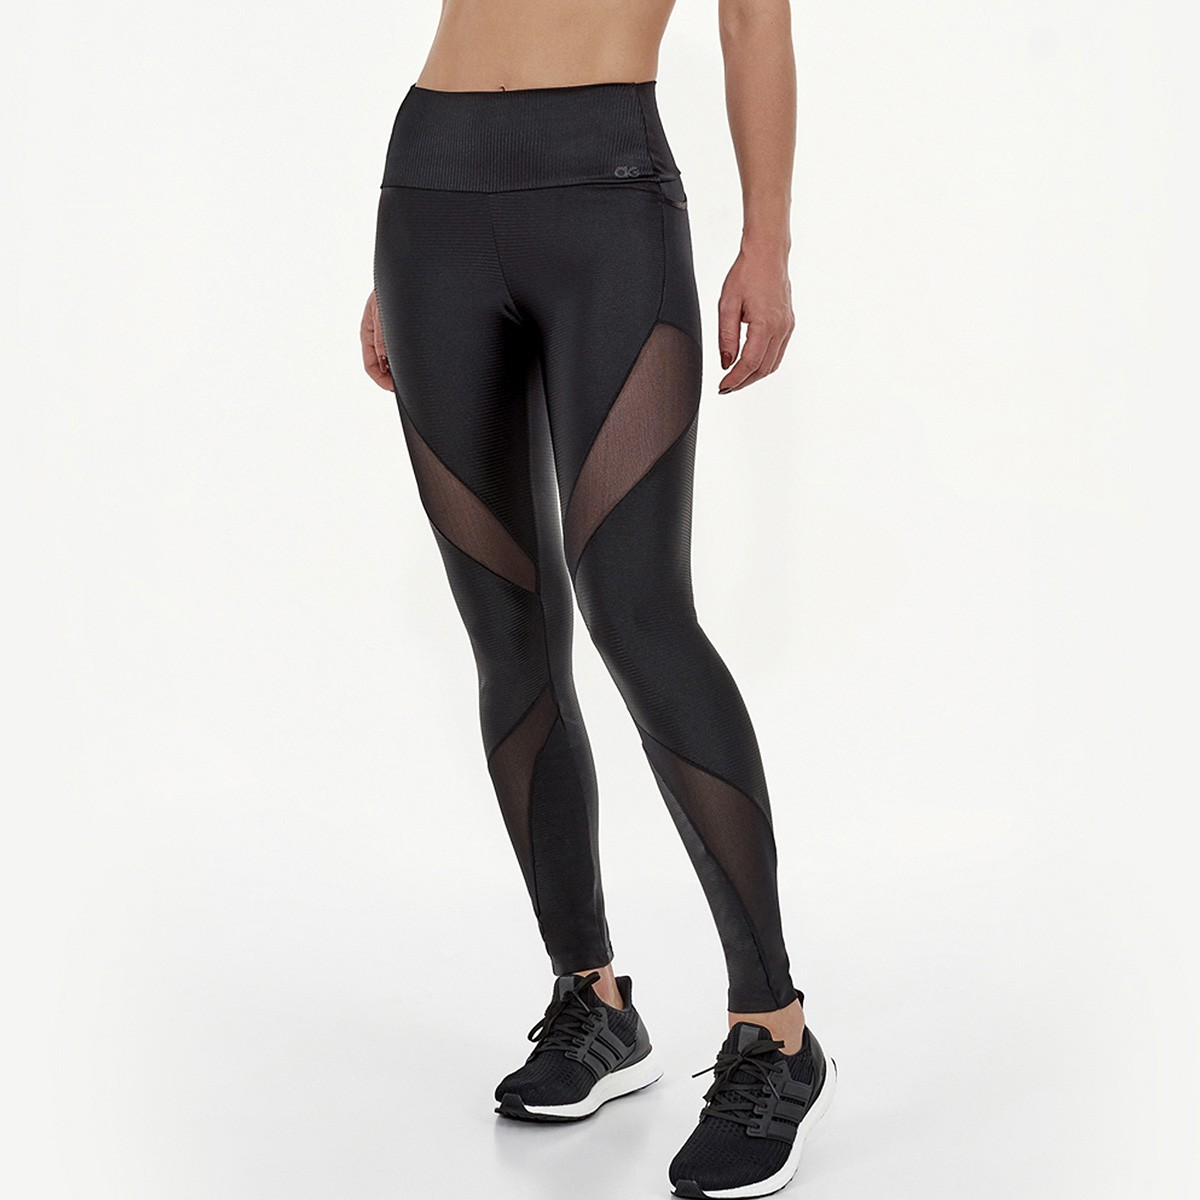 Legging Alto Giro Canelado Power Screen Clippings